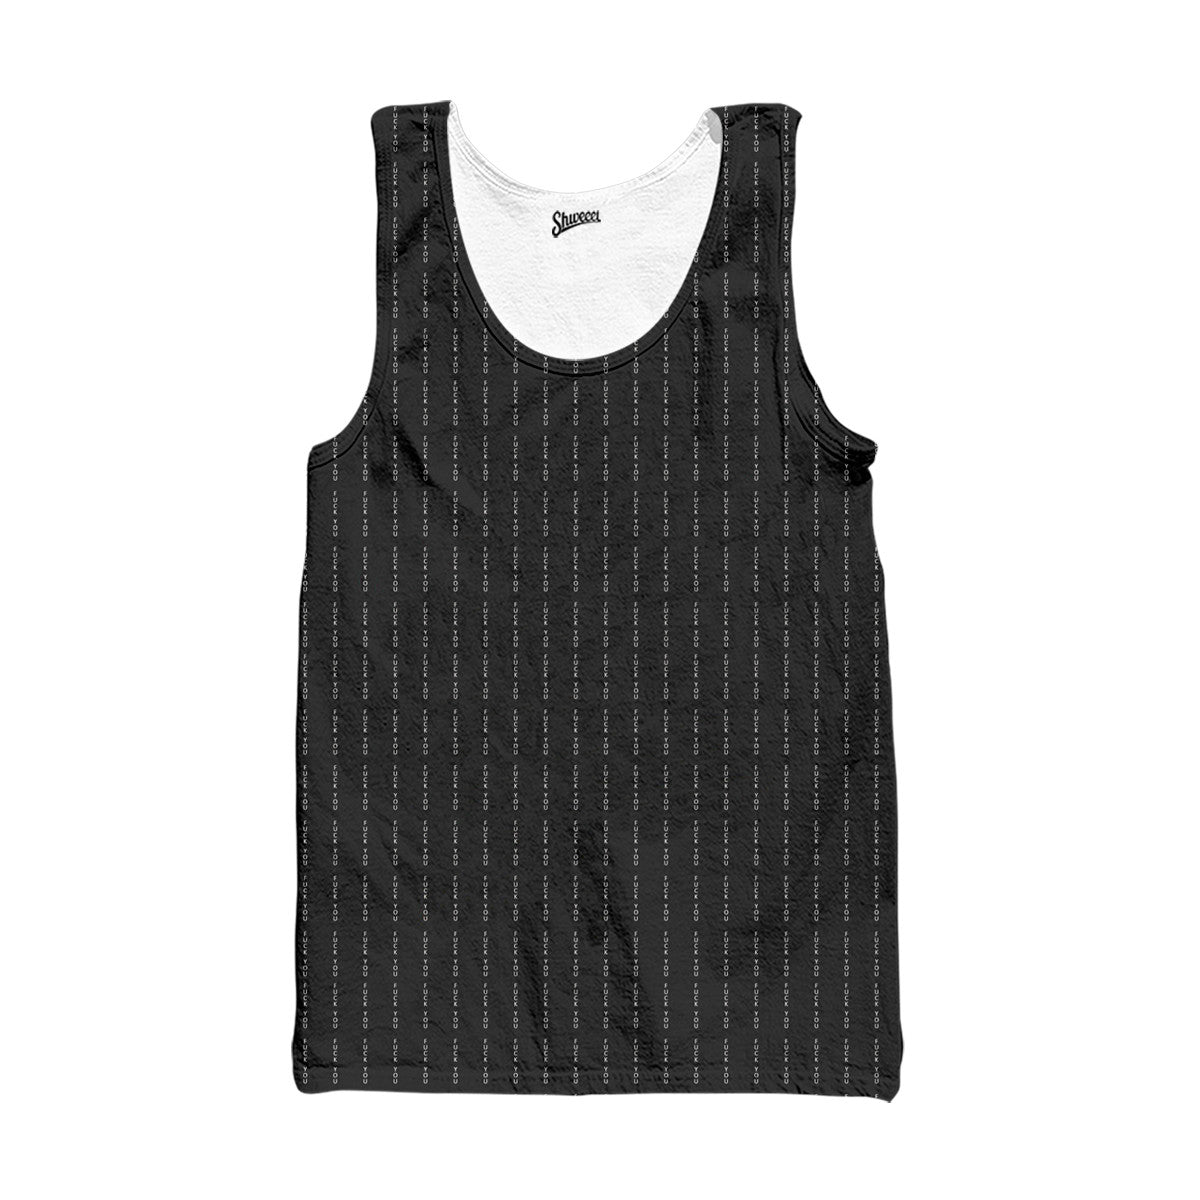 conor mcgregor fuck you pinstripe suit tank top